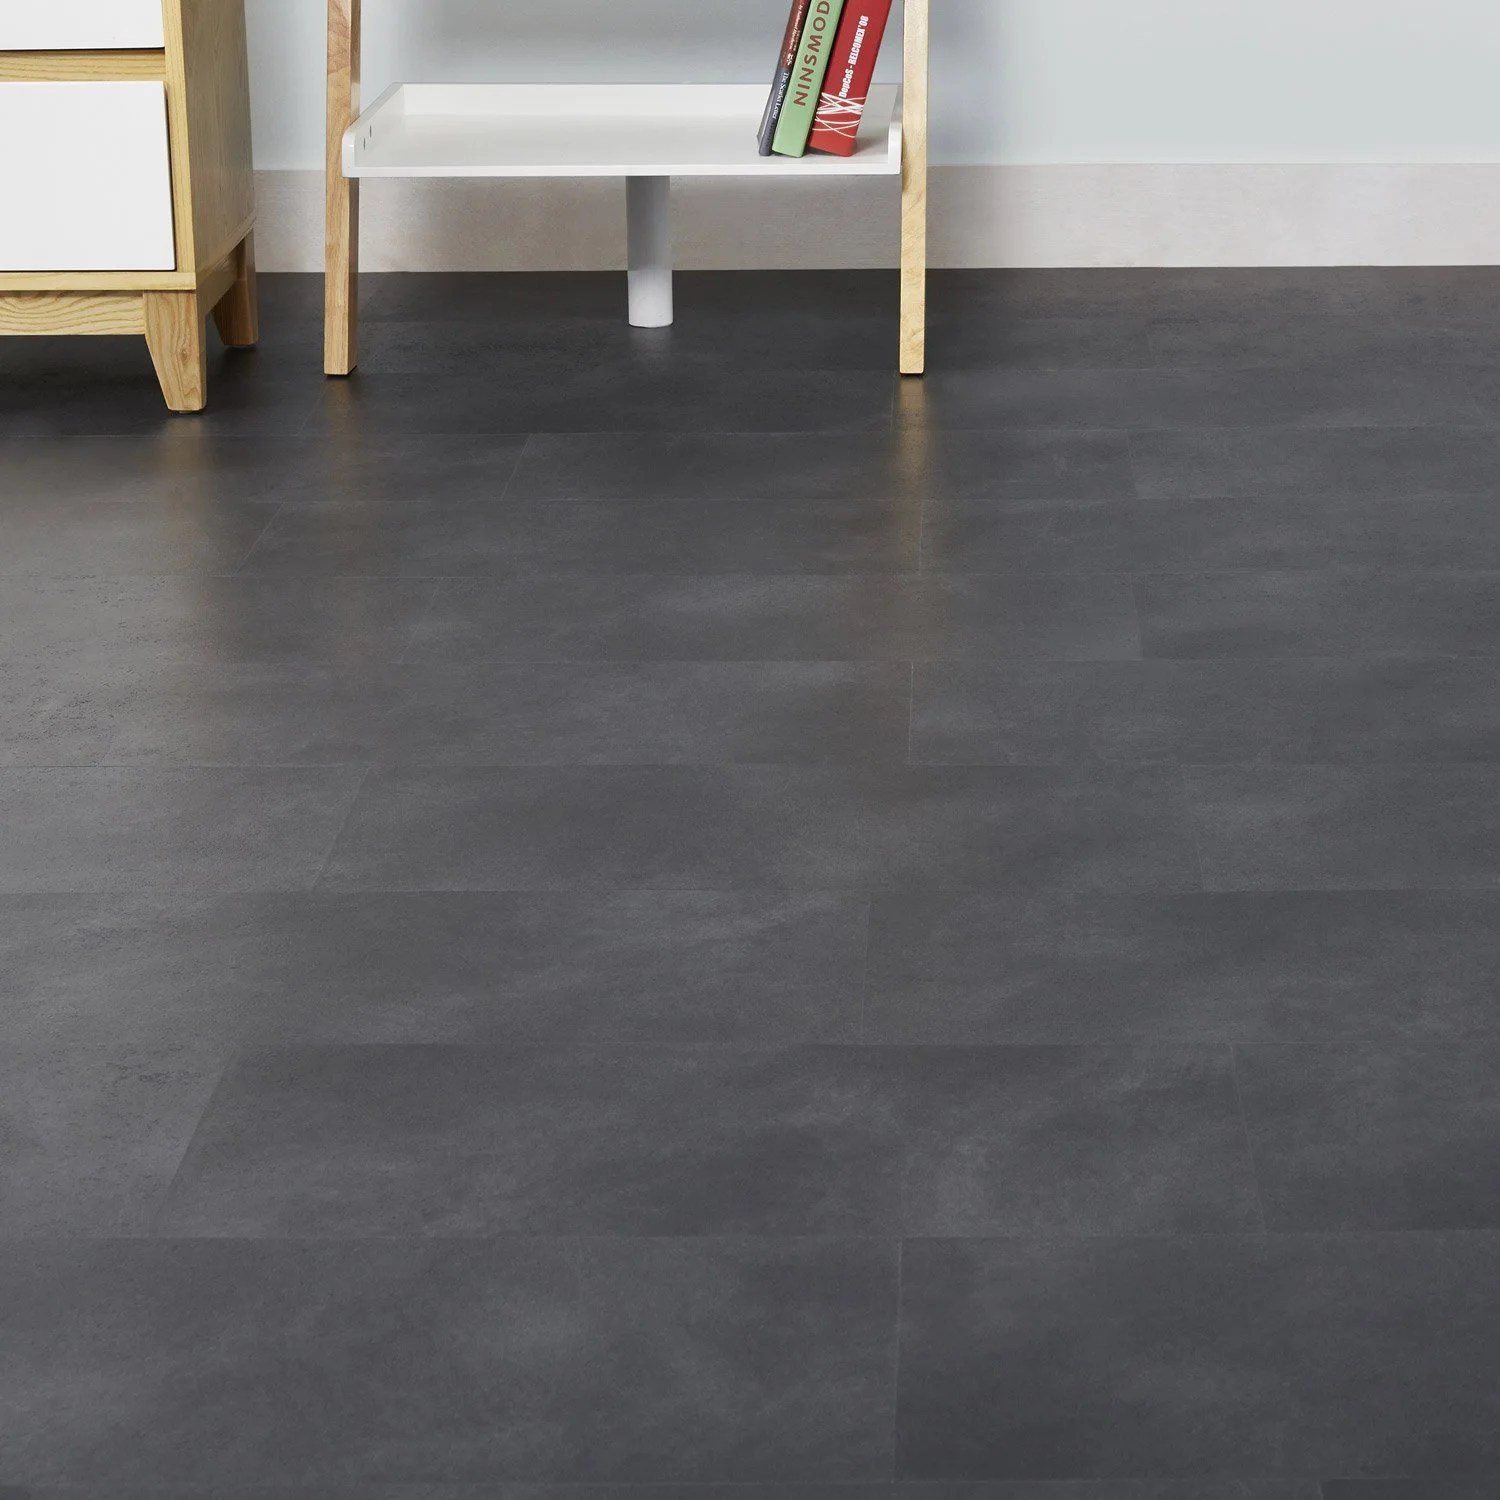 Dalle Lino Clipsable Dalle Pvc Clipsable Effet Beton Anthracite Artens Moods